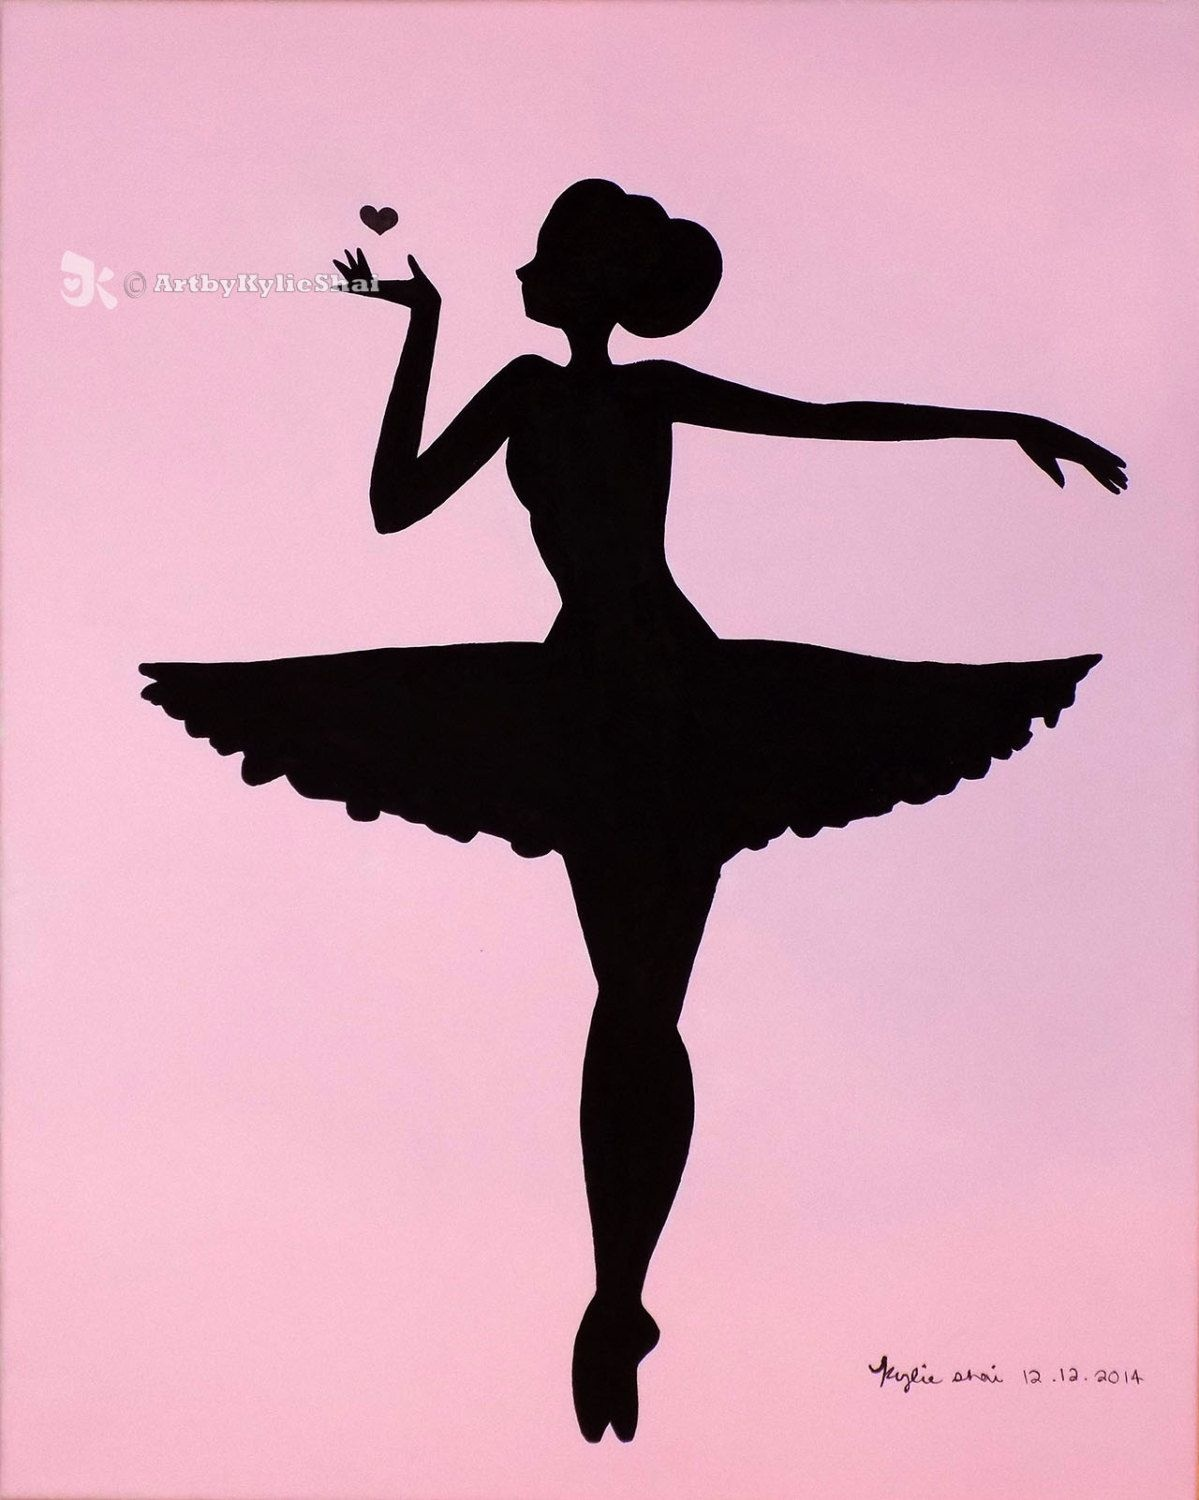 Printable (Ballerina Silhouette Pink)Artbykylieshai On Etsy | My - Free Printable Ballerina Silhouette